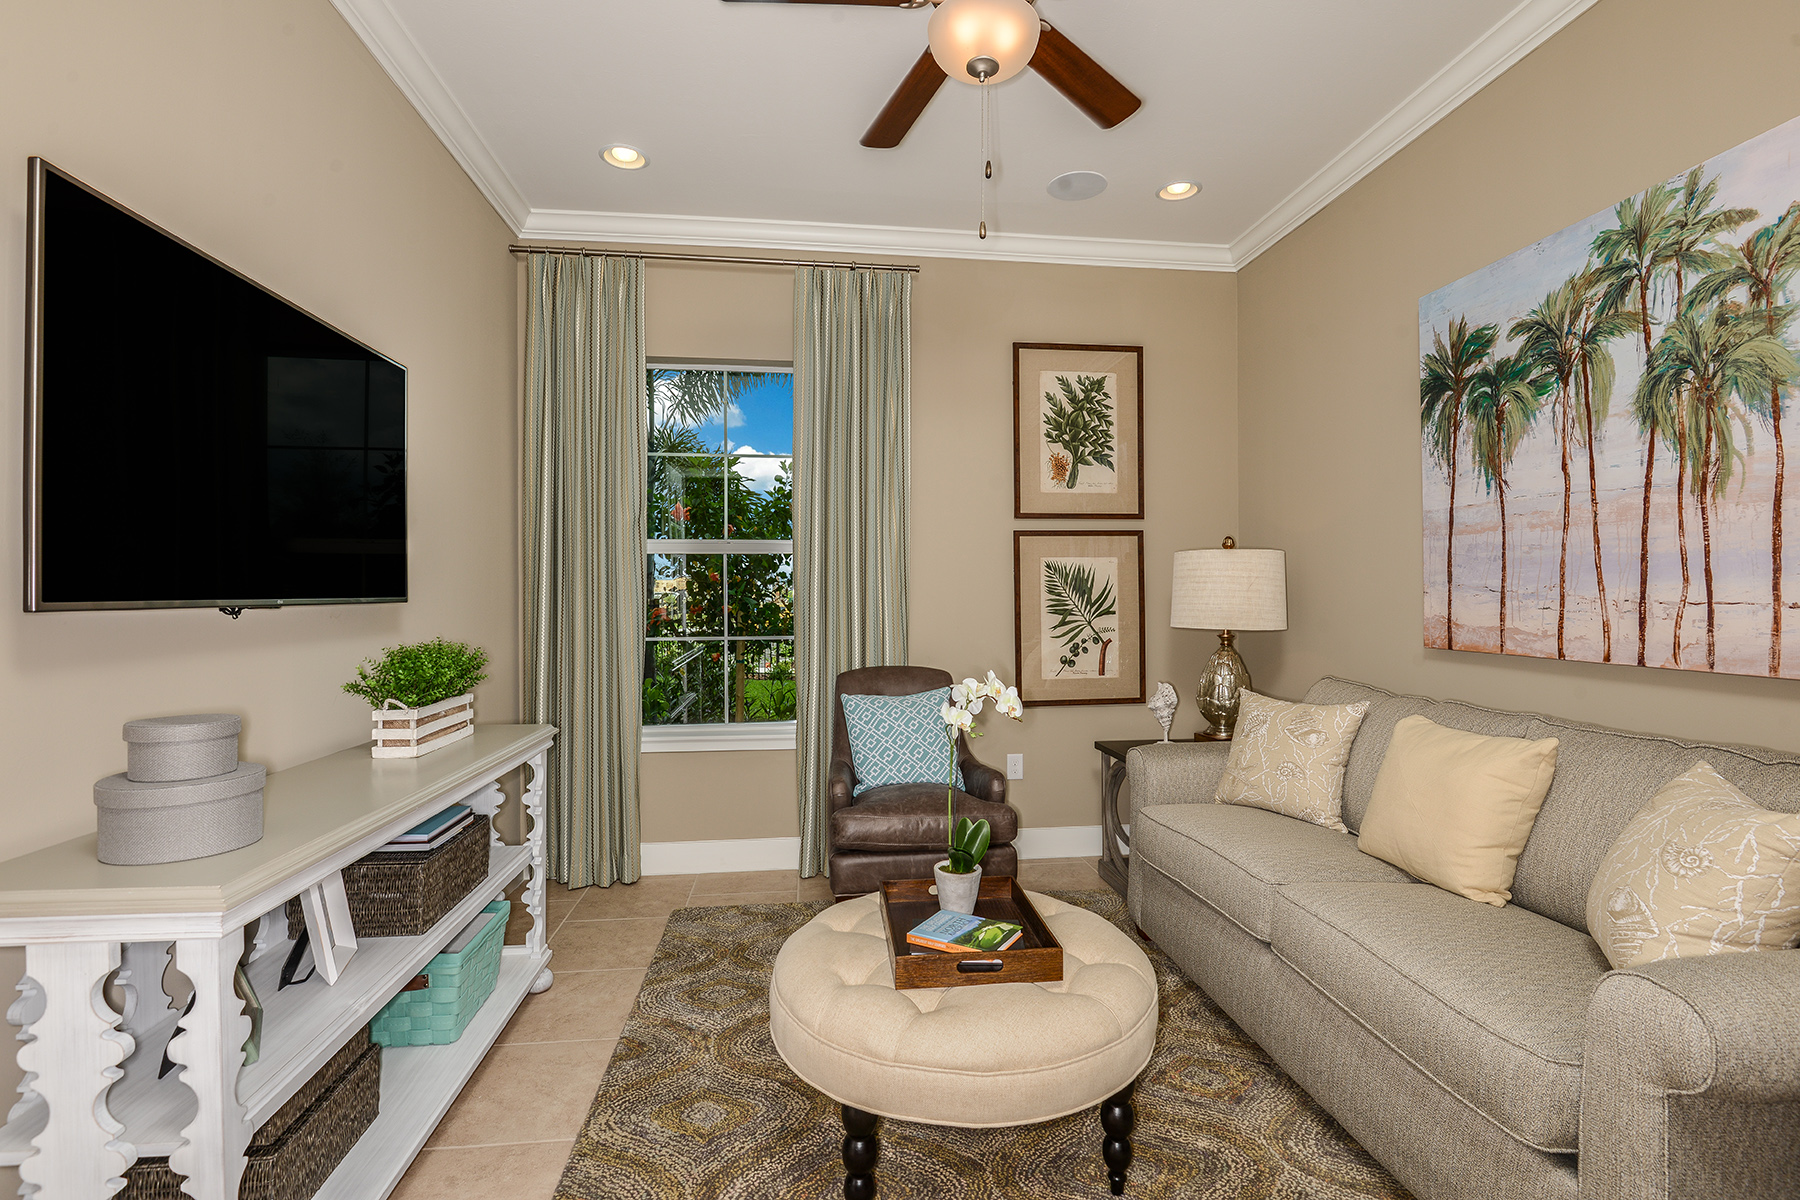 Banyan Plan Study Room at Compass Landing in Naples Florida by Mattamy Homes